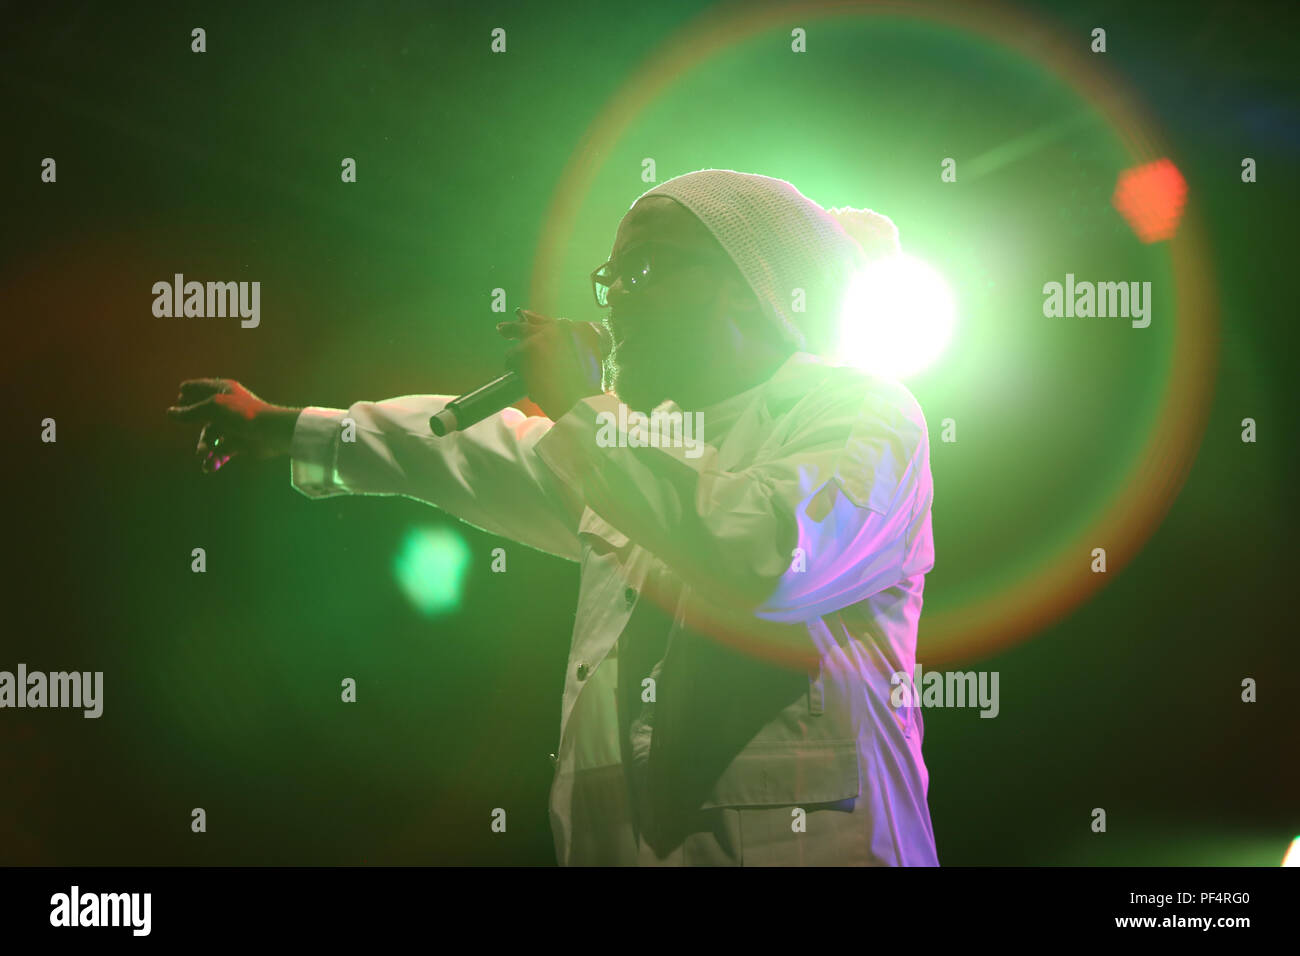 91e6acef0 Jamaican reggae singer Andrew Tosh sings at the Beachstage of the